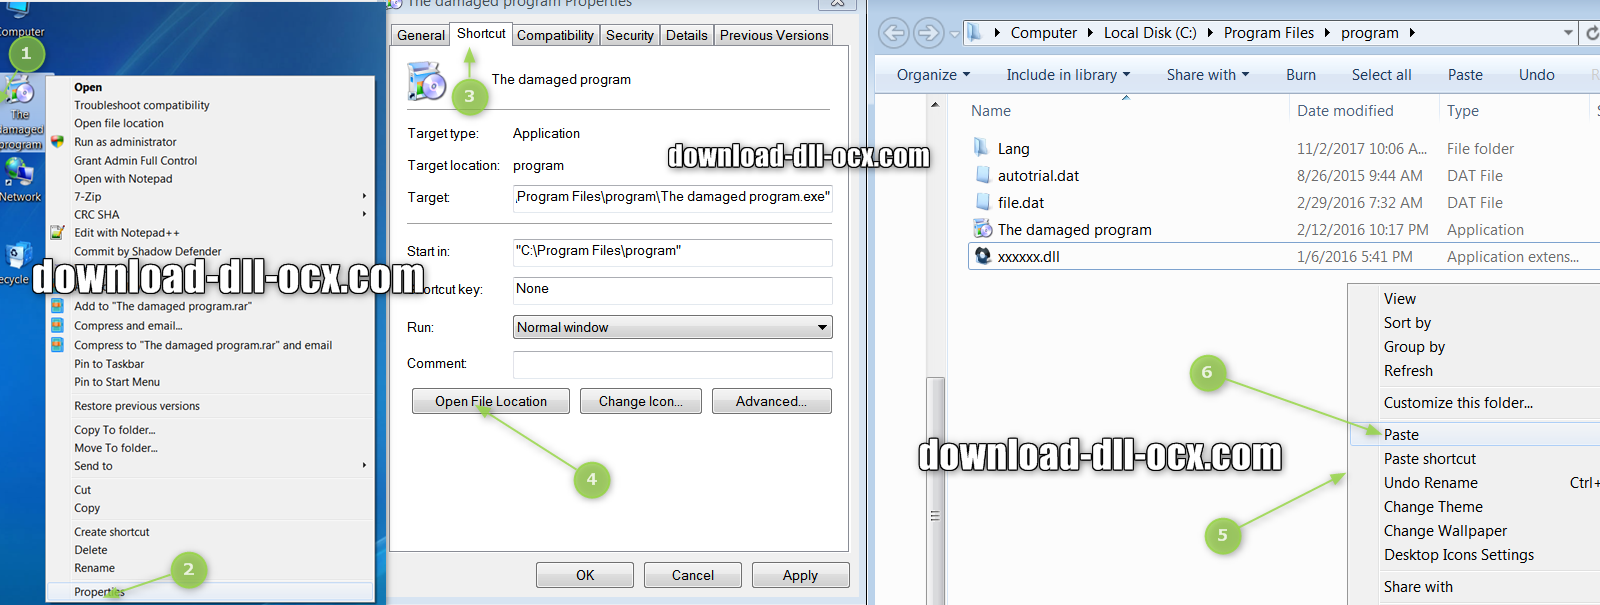 how to install spra0816.dll file? for fix missing